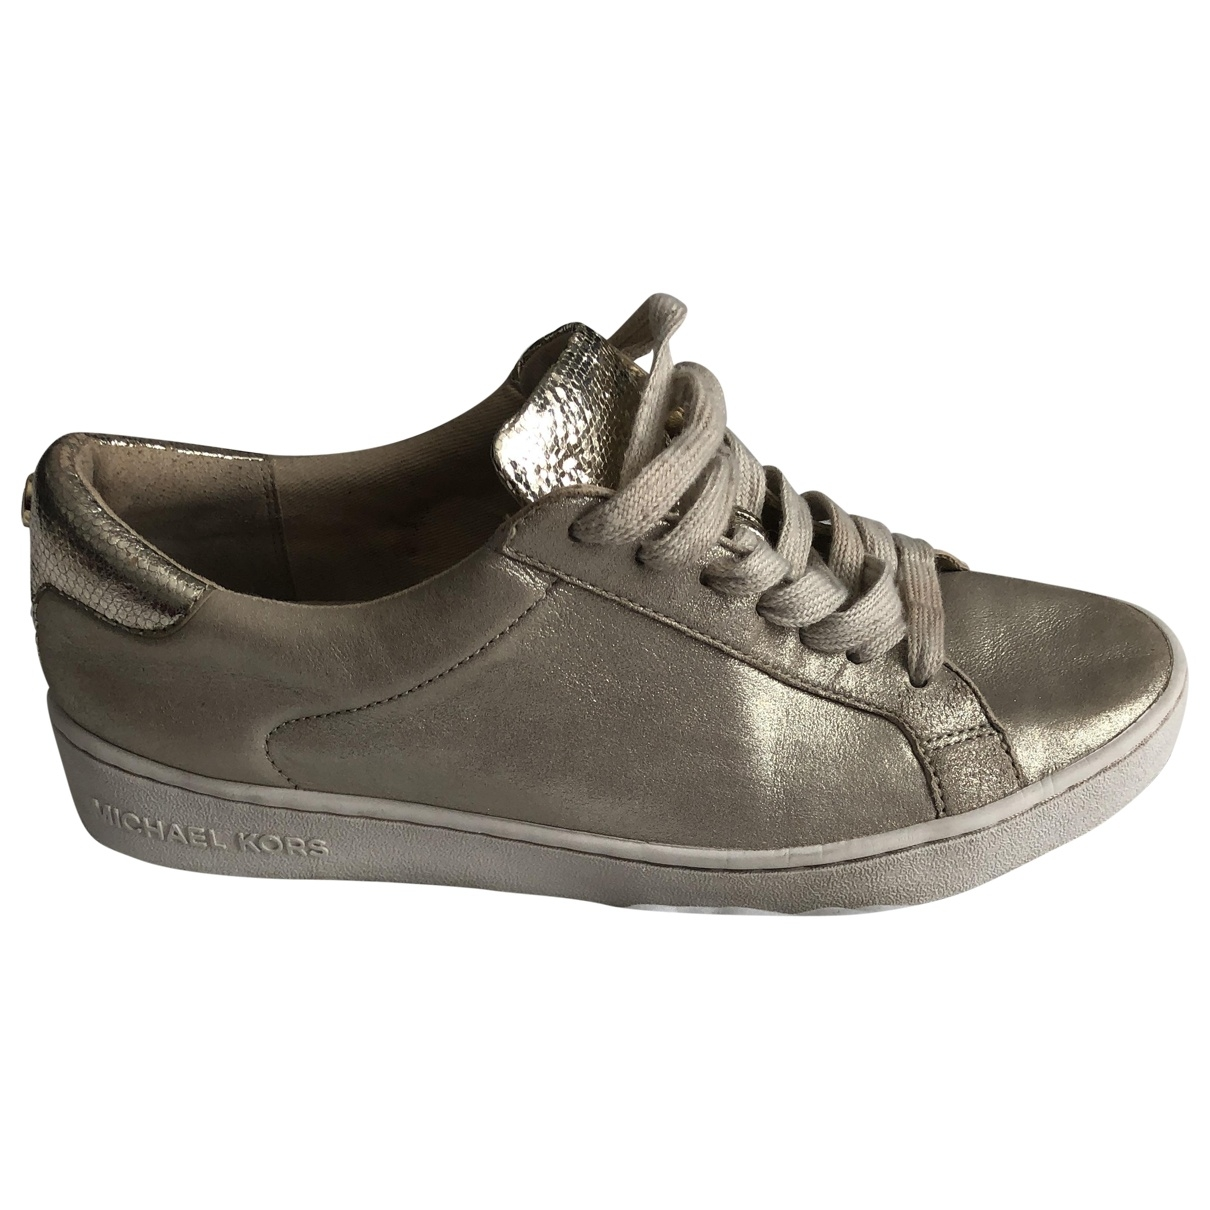 Michael Kors \N Gold Patent leather Trainers for Women 37.5 EU